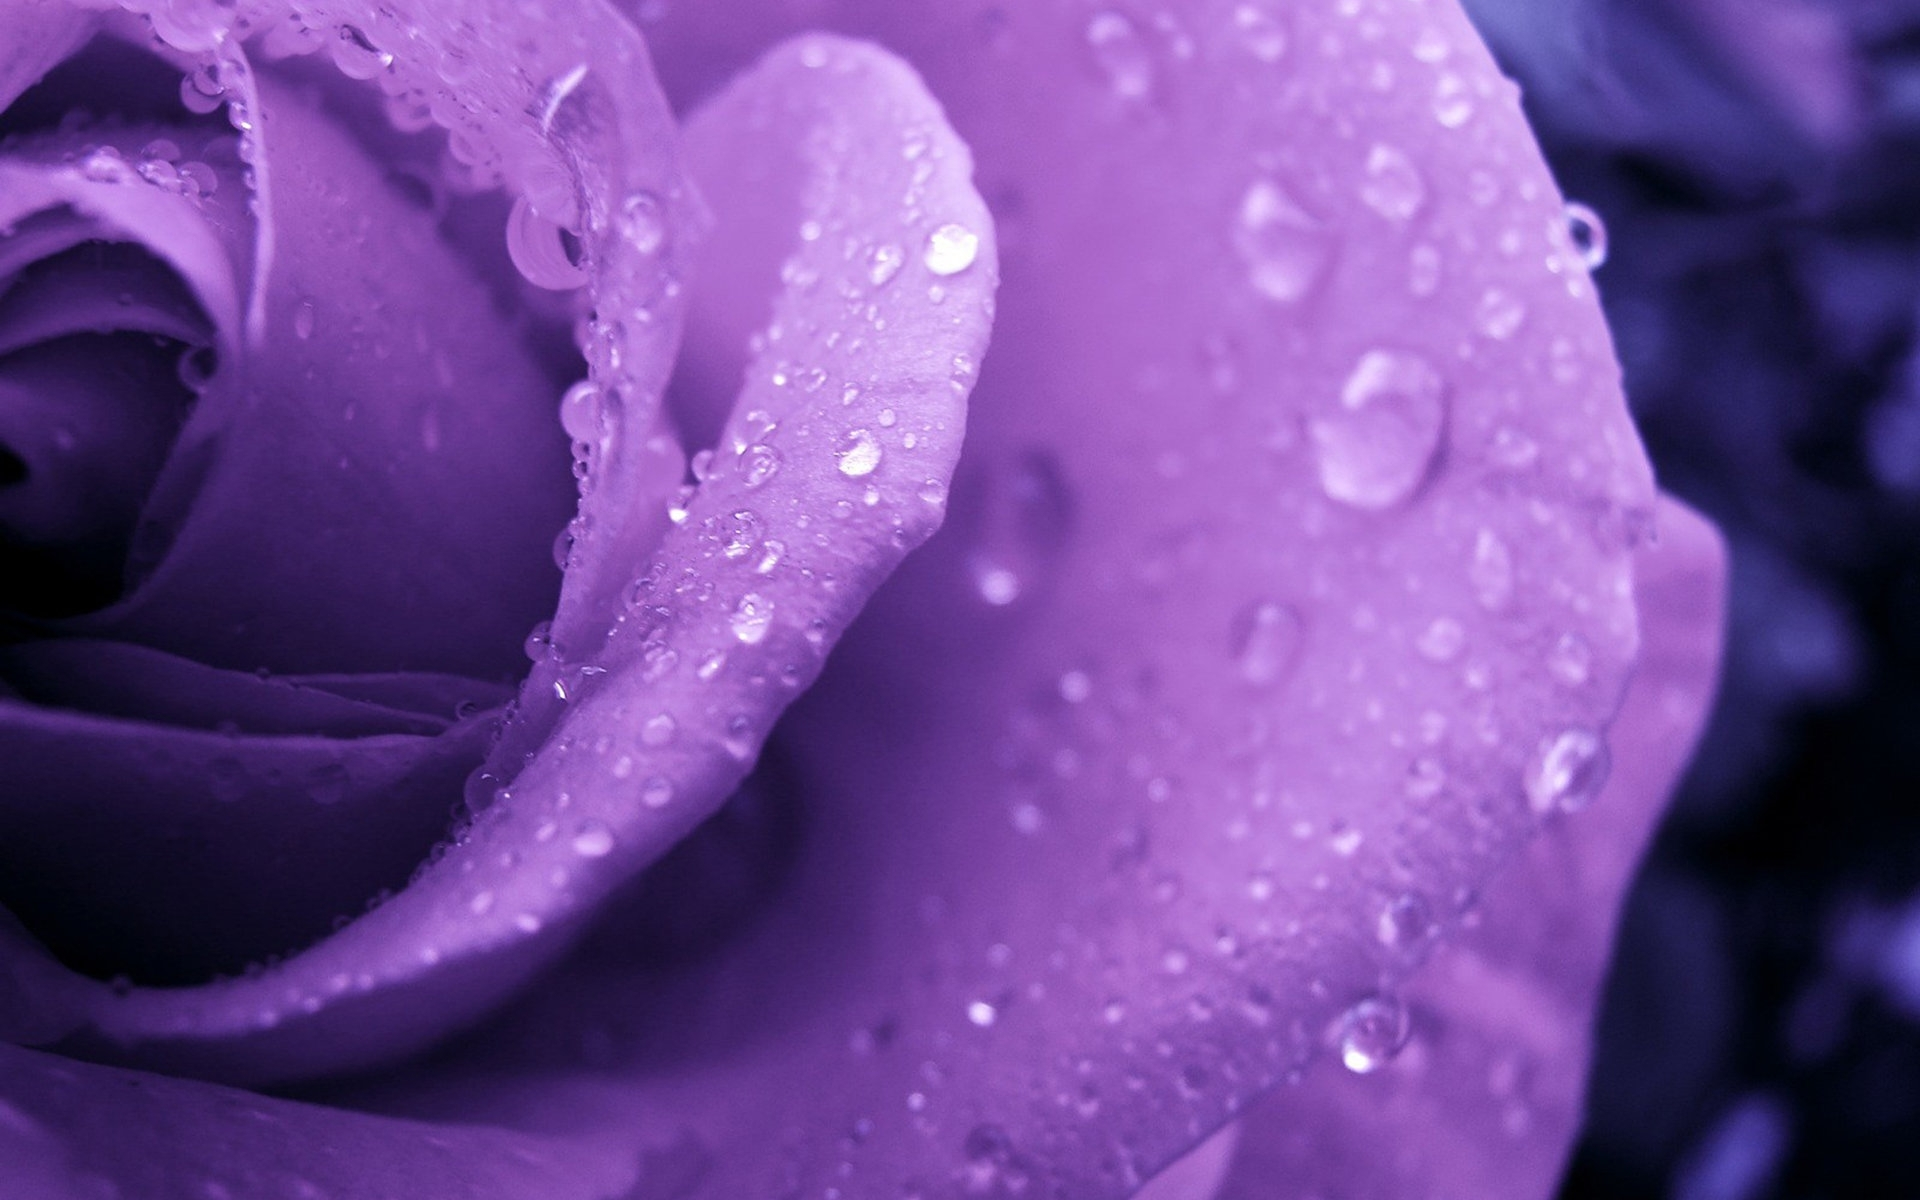 Purple Roses Backgrounds   Wallpaper High Definition High Quality 1920x1200